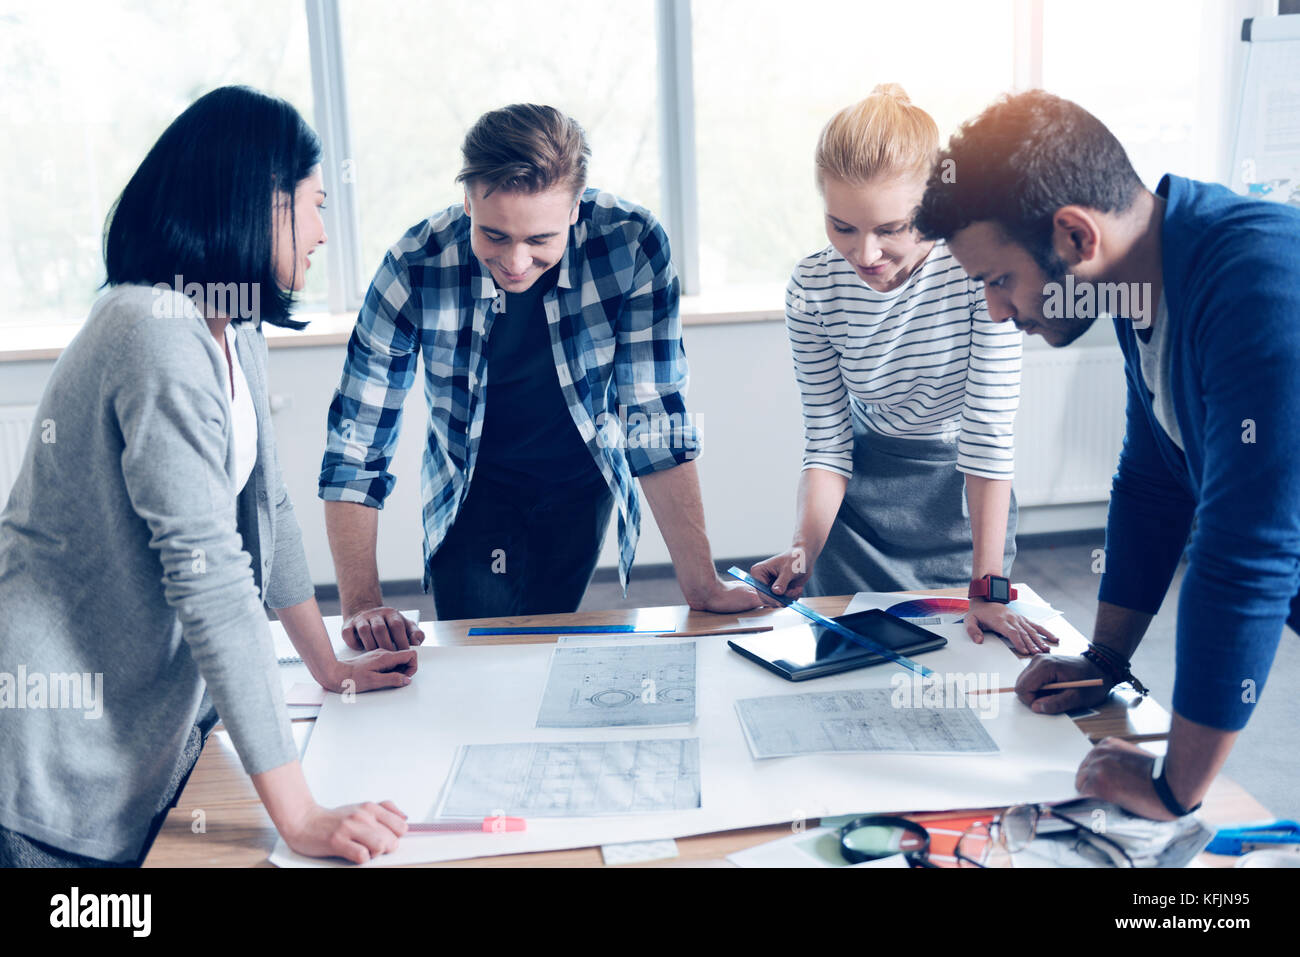 Attentive colleagues thinking about project - Stock Image